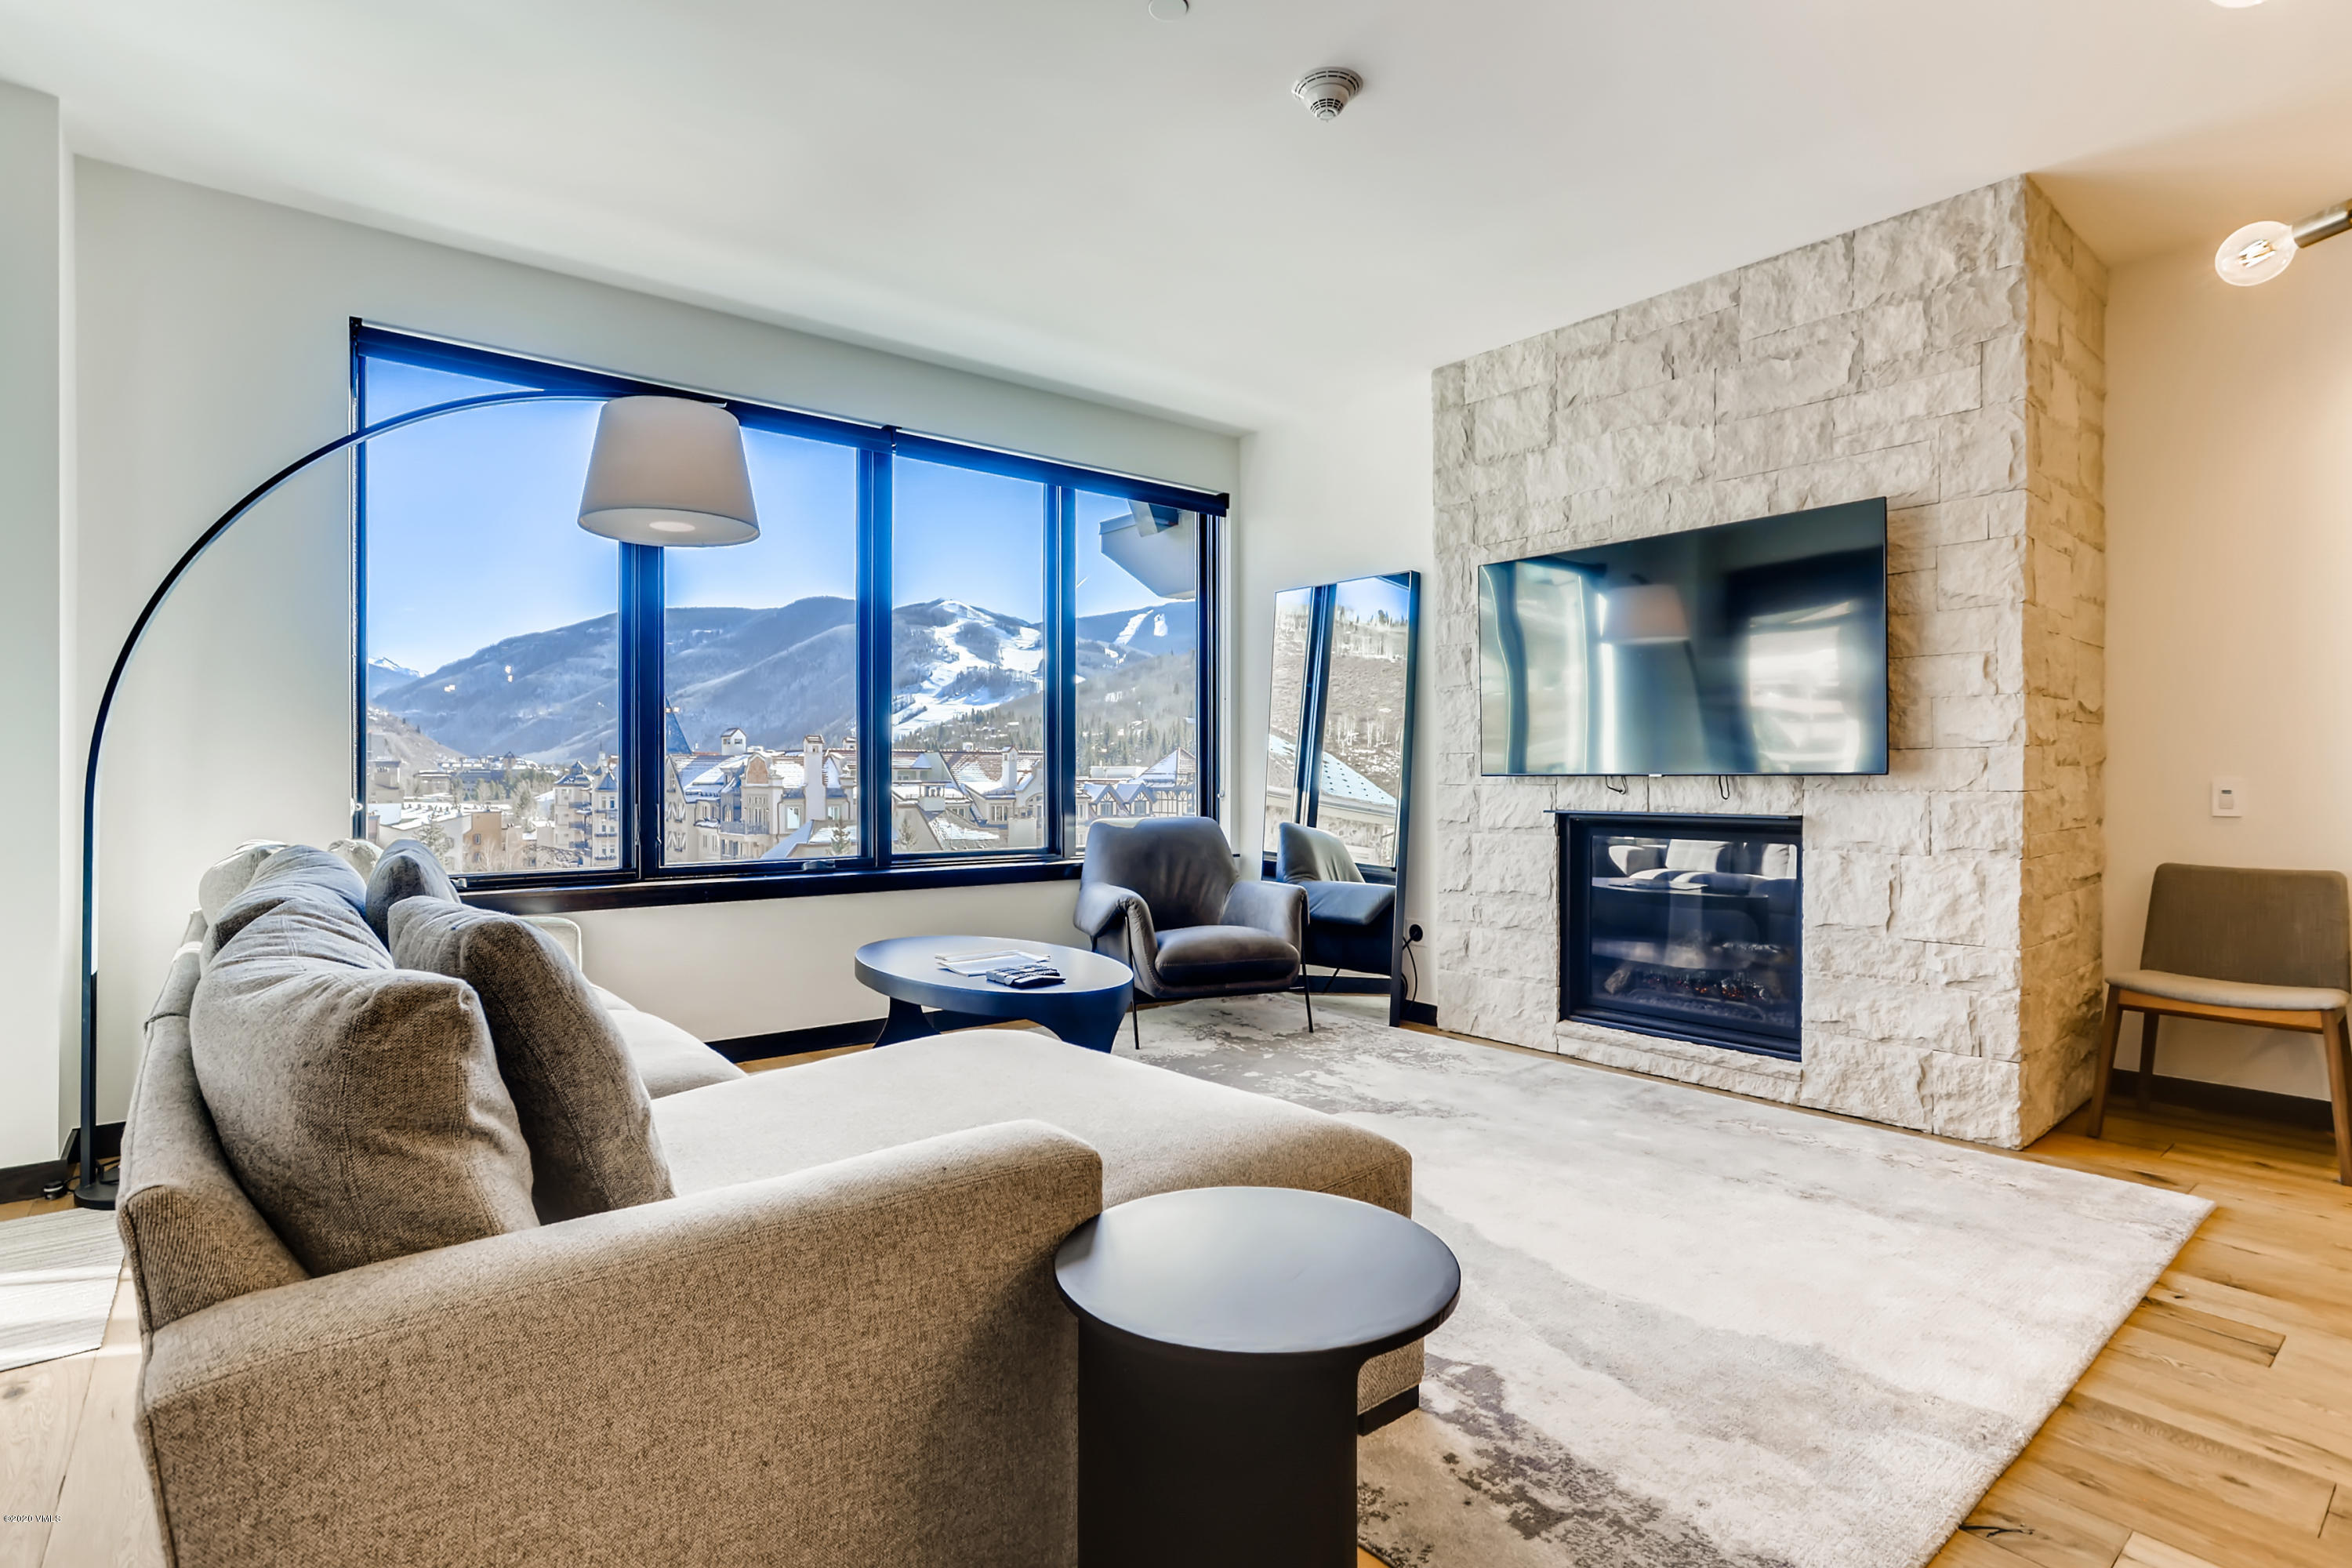 This dynamic 3-bedroom residence includes 2 decks, and dramatic views over Lionshead, the Gore Range, and Vail's ski slopes. Even better, the third bedroom locks off, operating as a separate hotel suite for potential rental revenue. Easy walk to the lift, or ride in style on The Lion's electric vehicle. Infinite-current lap pool, in and outdoor hot tubs, common recreation rooms, and ample owner's/parking storage will set this Vail residence apart from the rest.